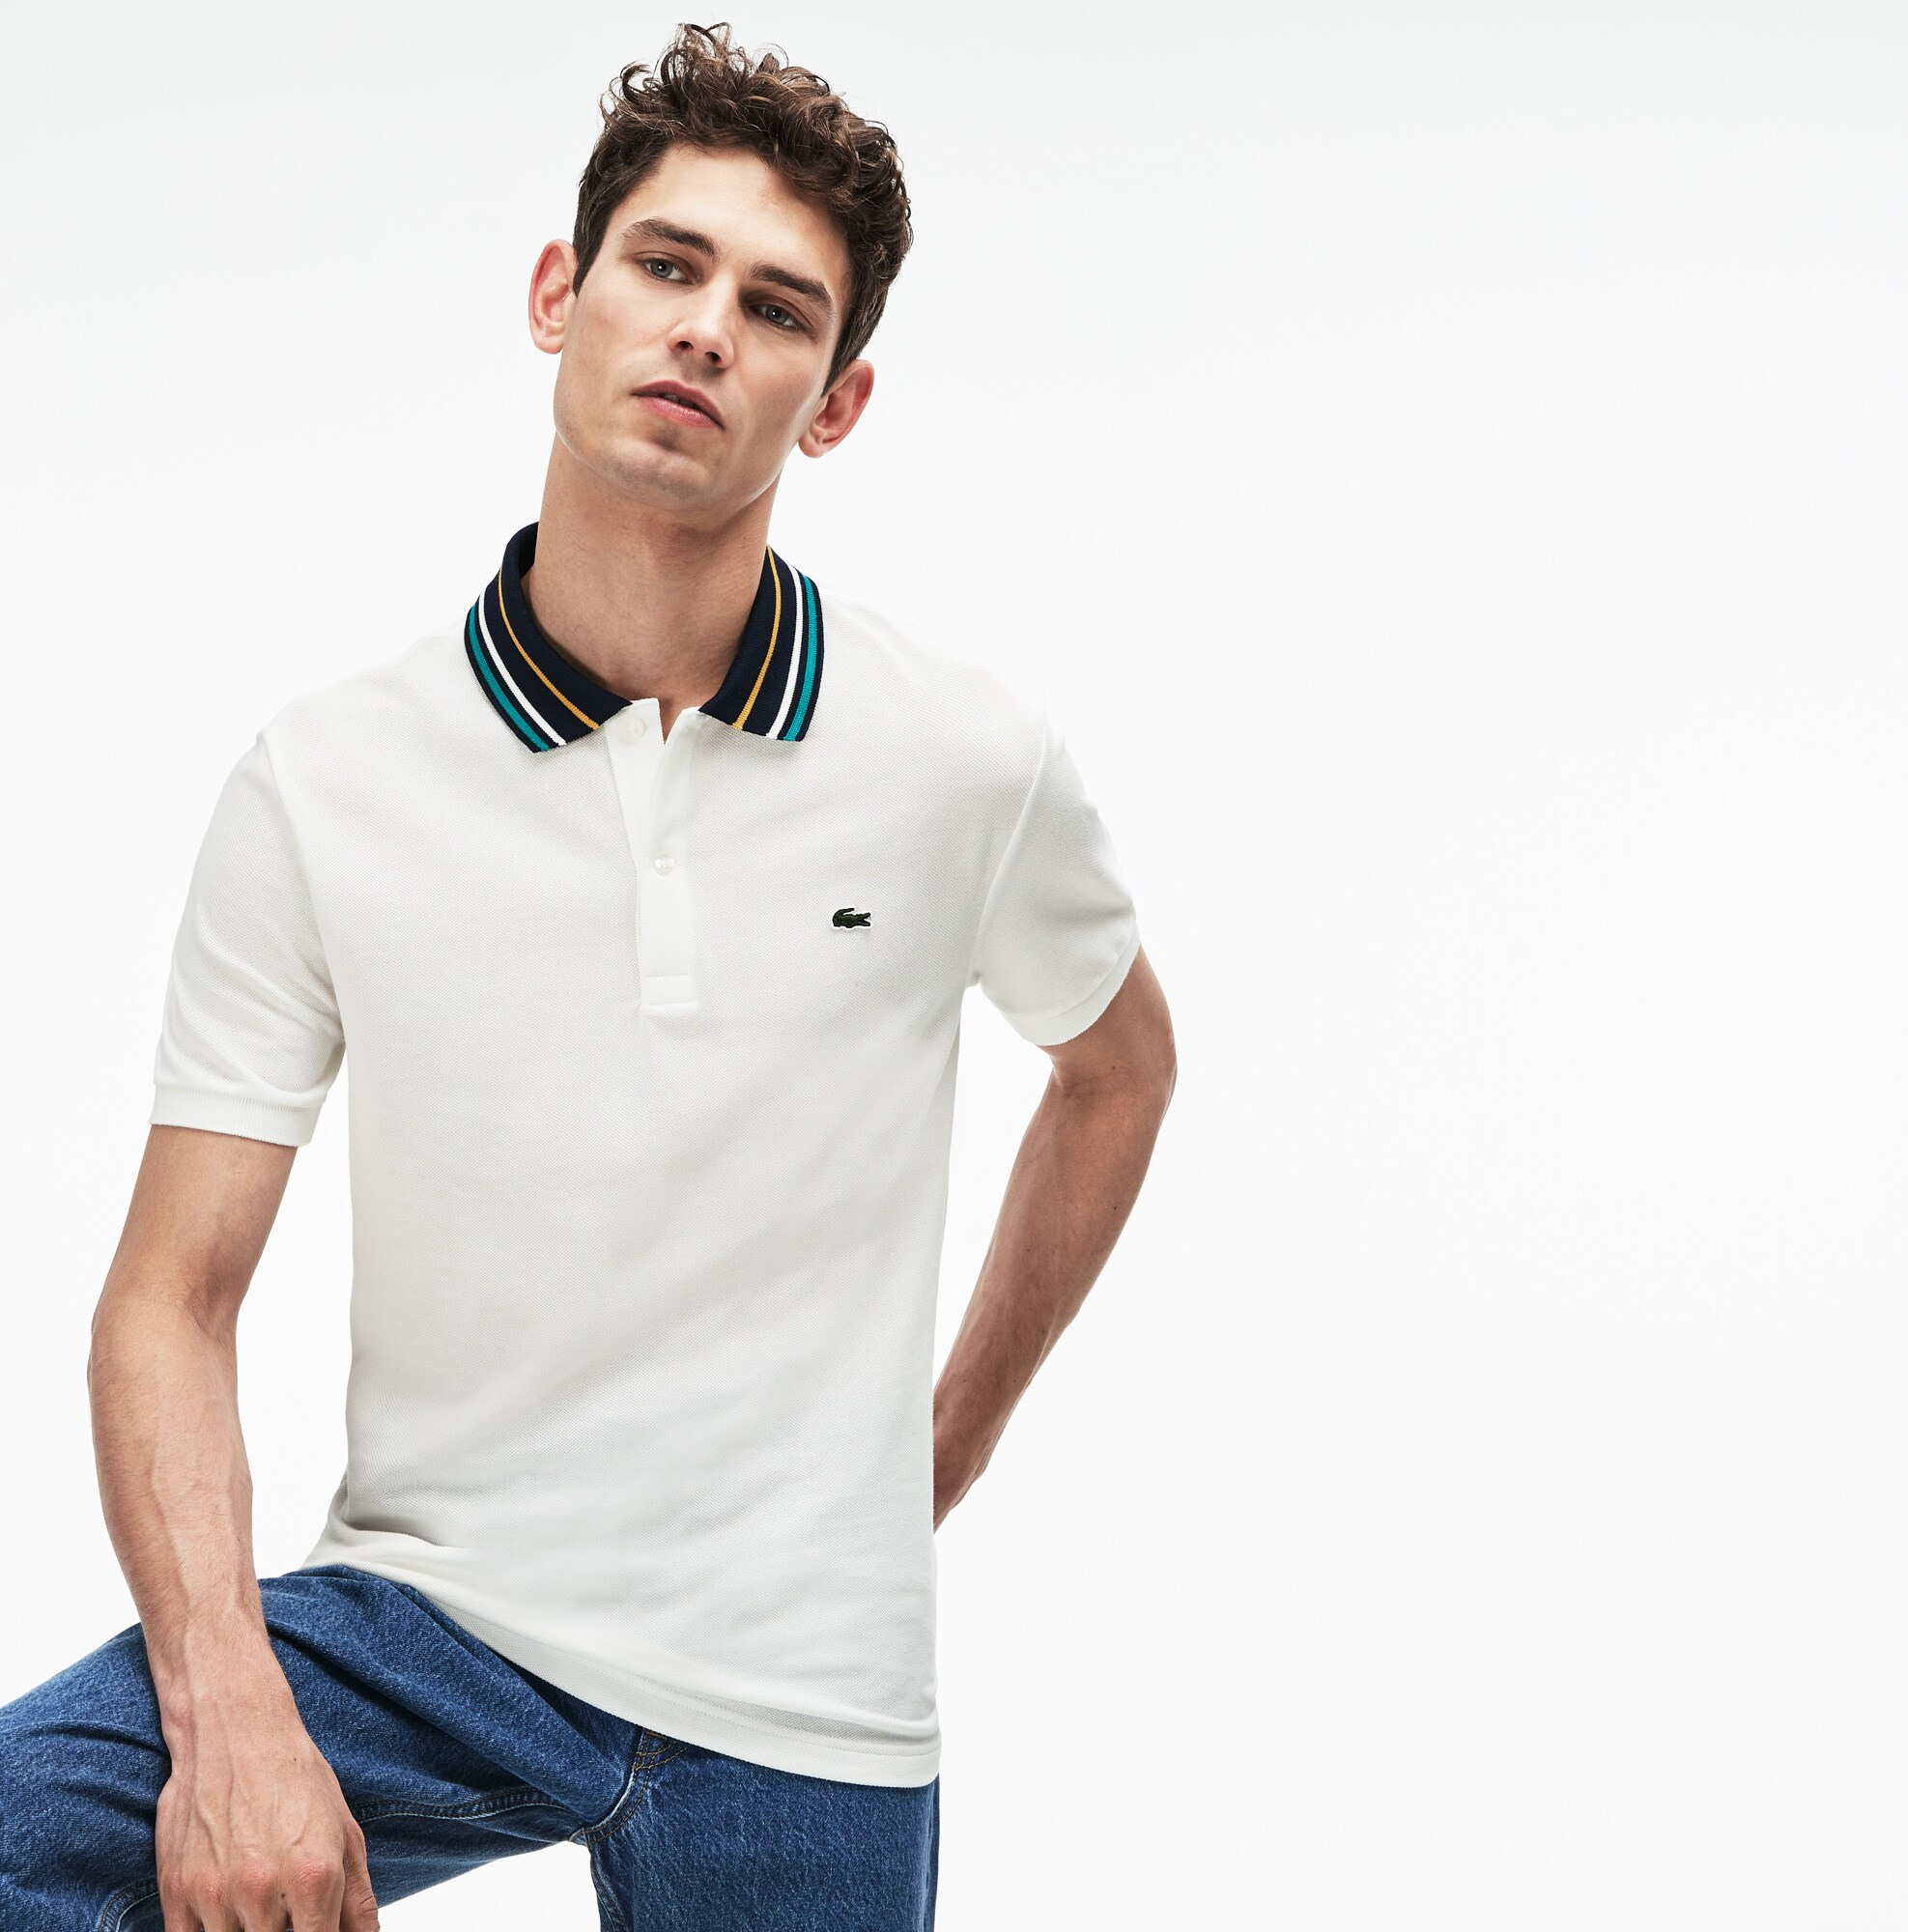 60fd0b82d77 Men s Lacoste Slim Fit Striped Contrast Collar Petit Piqué Polo ...